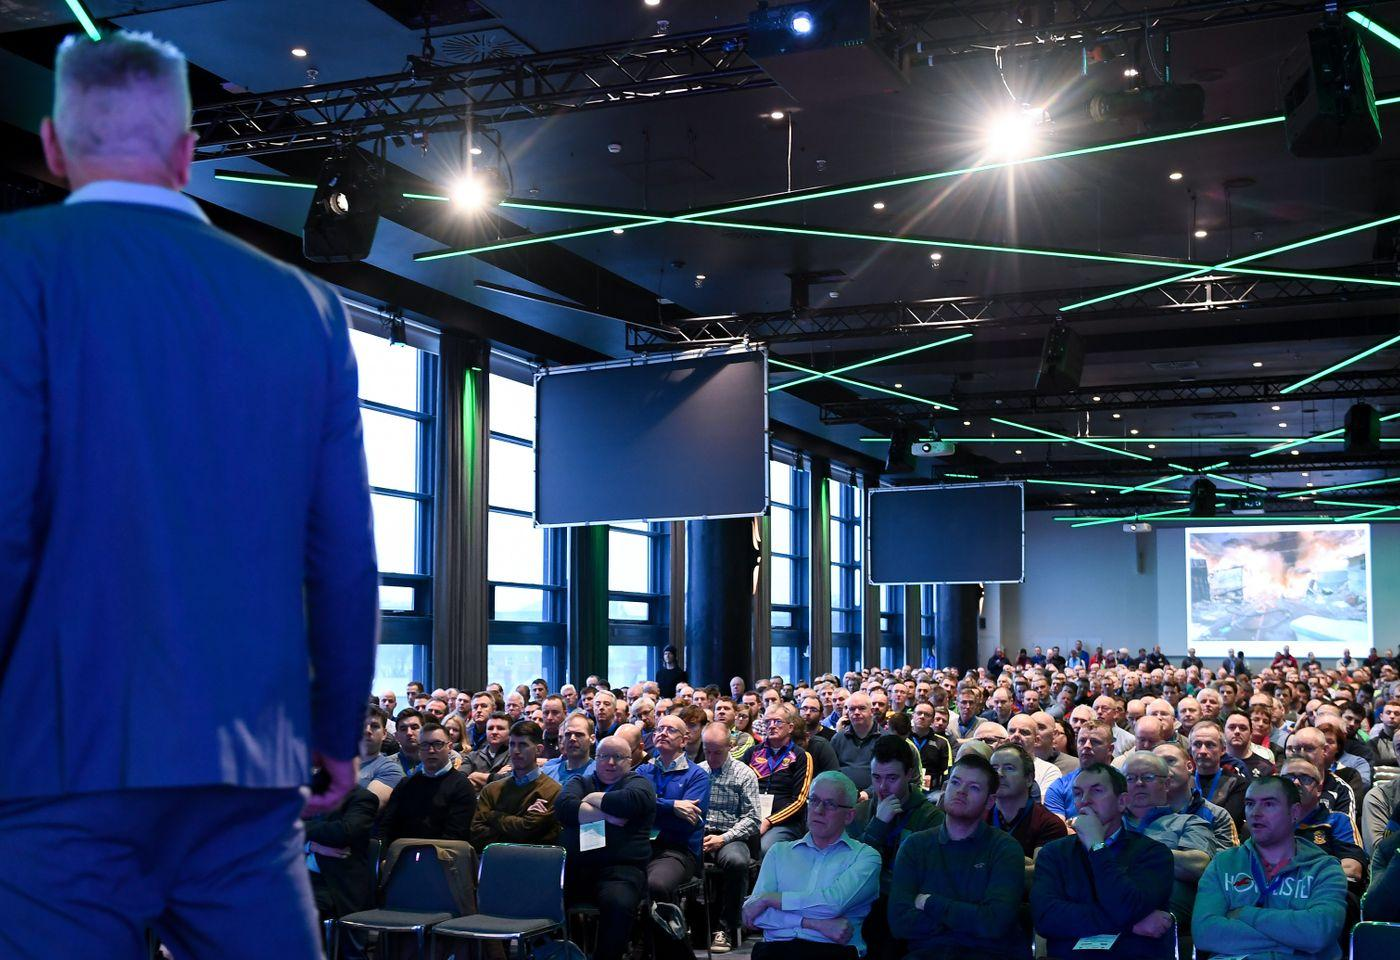 Delivering a talk to 850 GAA Gaelic Athletic Association coaches at Croke Park, Dublin City, Ireland